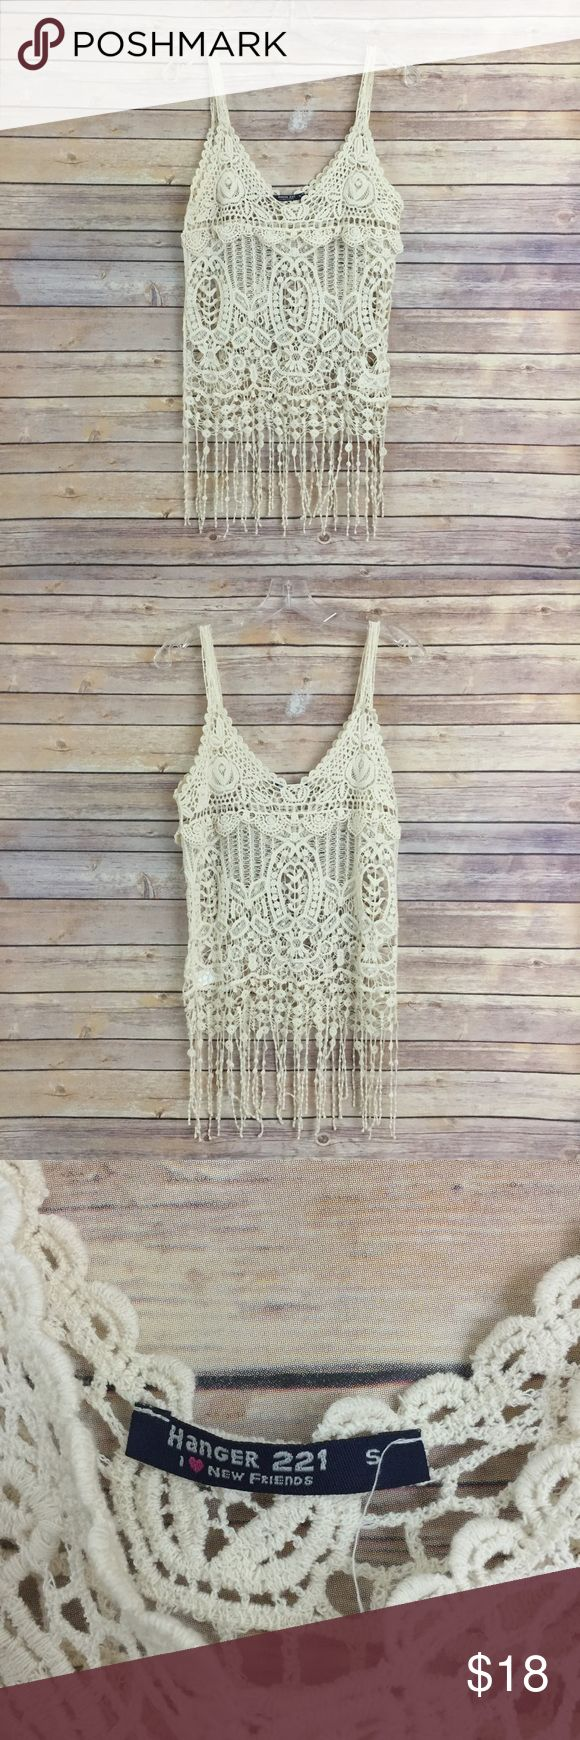 "Cute boho fringe crochet tank top, size Small This super cute cream, boho crochet fringe tank top is a size small and perfect for upcoming Spring music festivals! It measures 16"" flat across the bust and is 31"" long.  In good condition Hanger221 Tops Tank Tops"